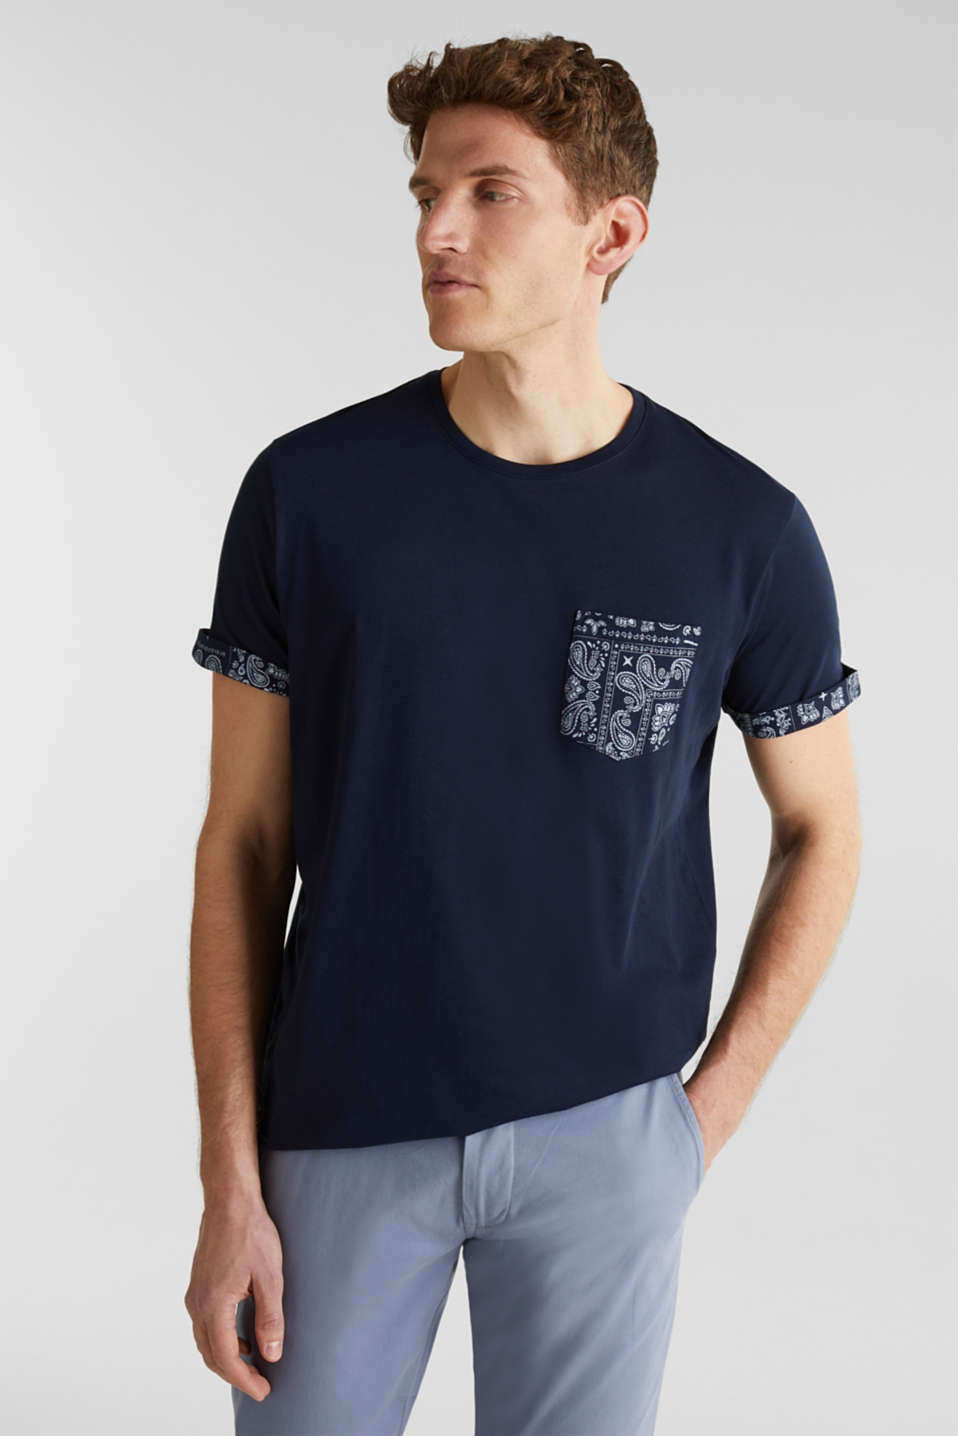 Esprit - Jersey T-shirt with a bandana print, 100% cotton